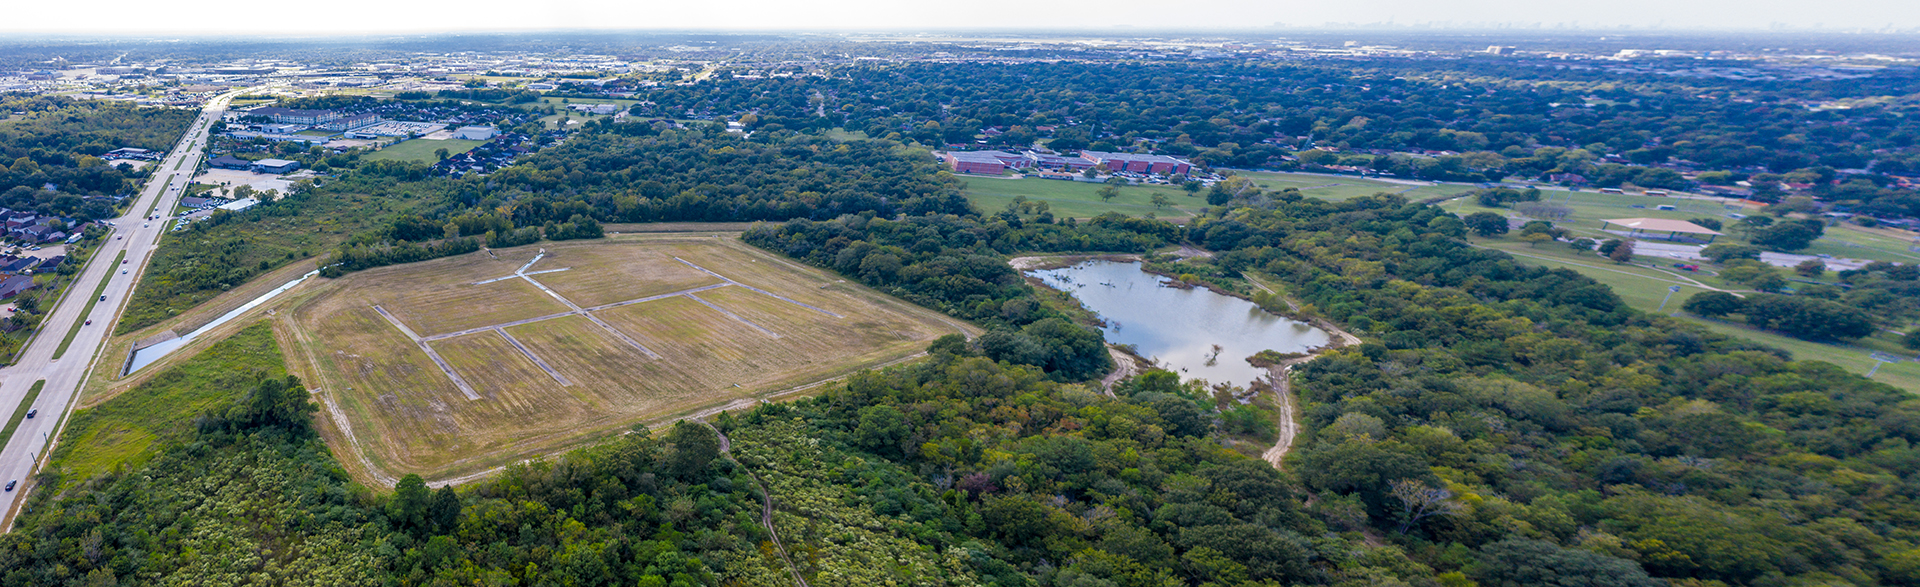 South Shaver Detention Basin-Harris County, Texas